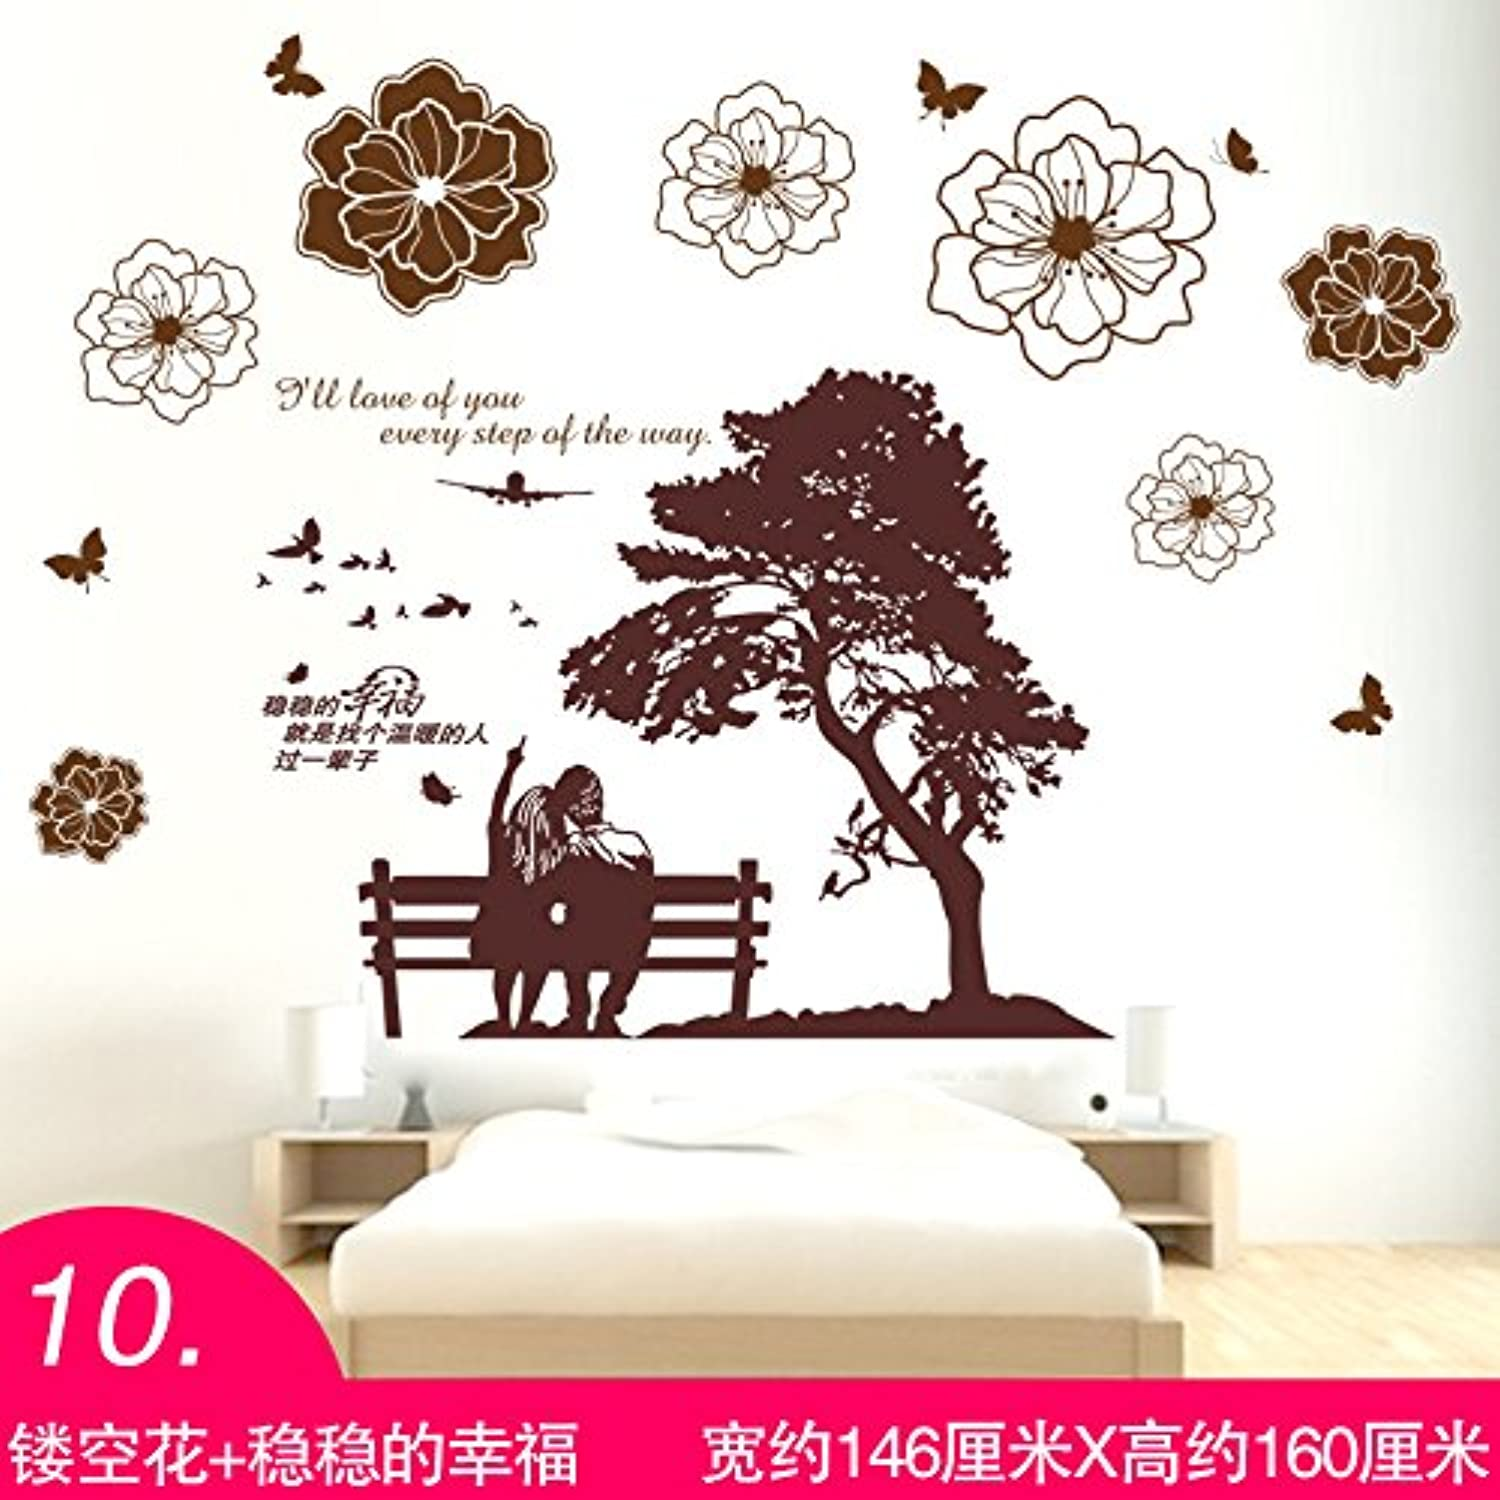 Znzbzt Wall Paper SelfAdhesive Wall Stickers Room Wall Decoration Wall Decals Wallpaper Wall Murals Exposed Flower